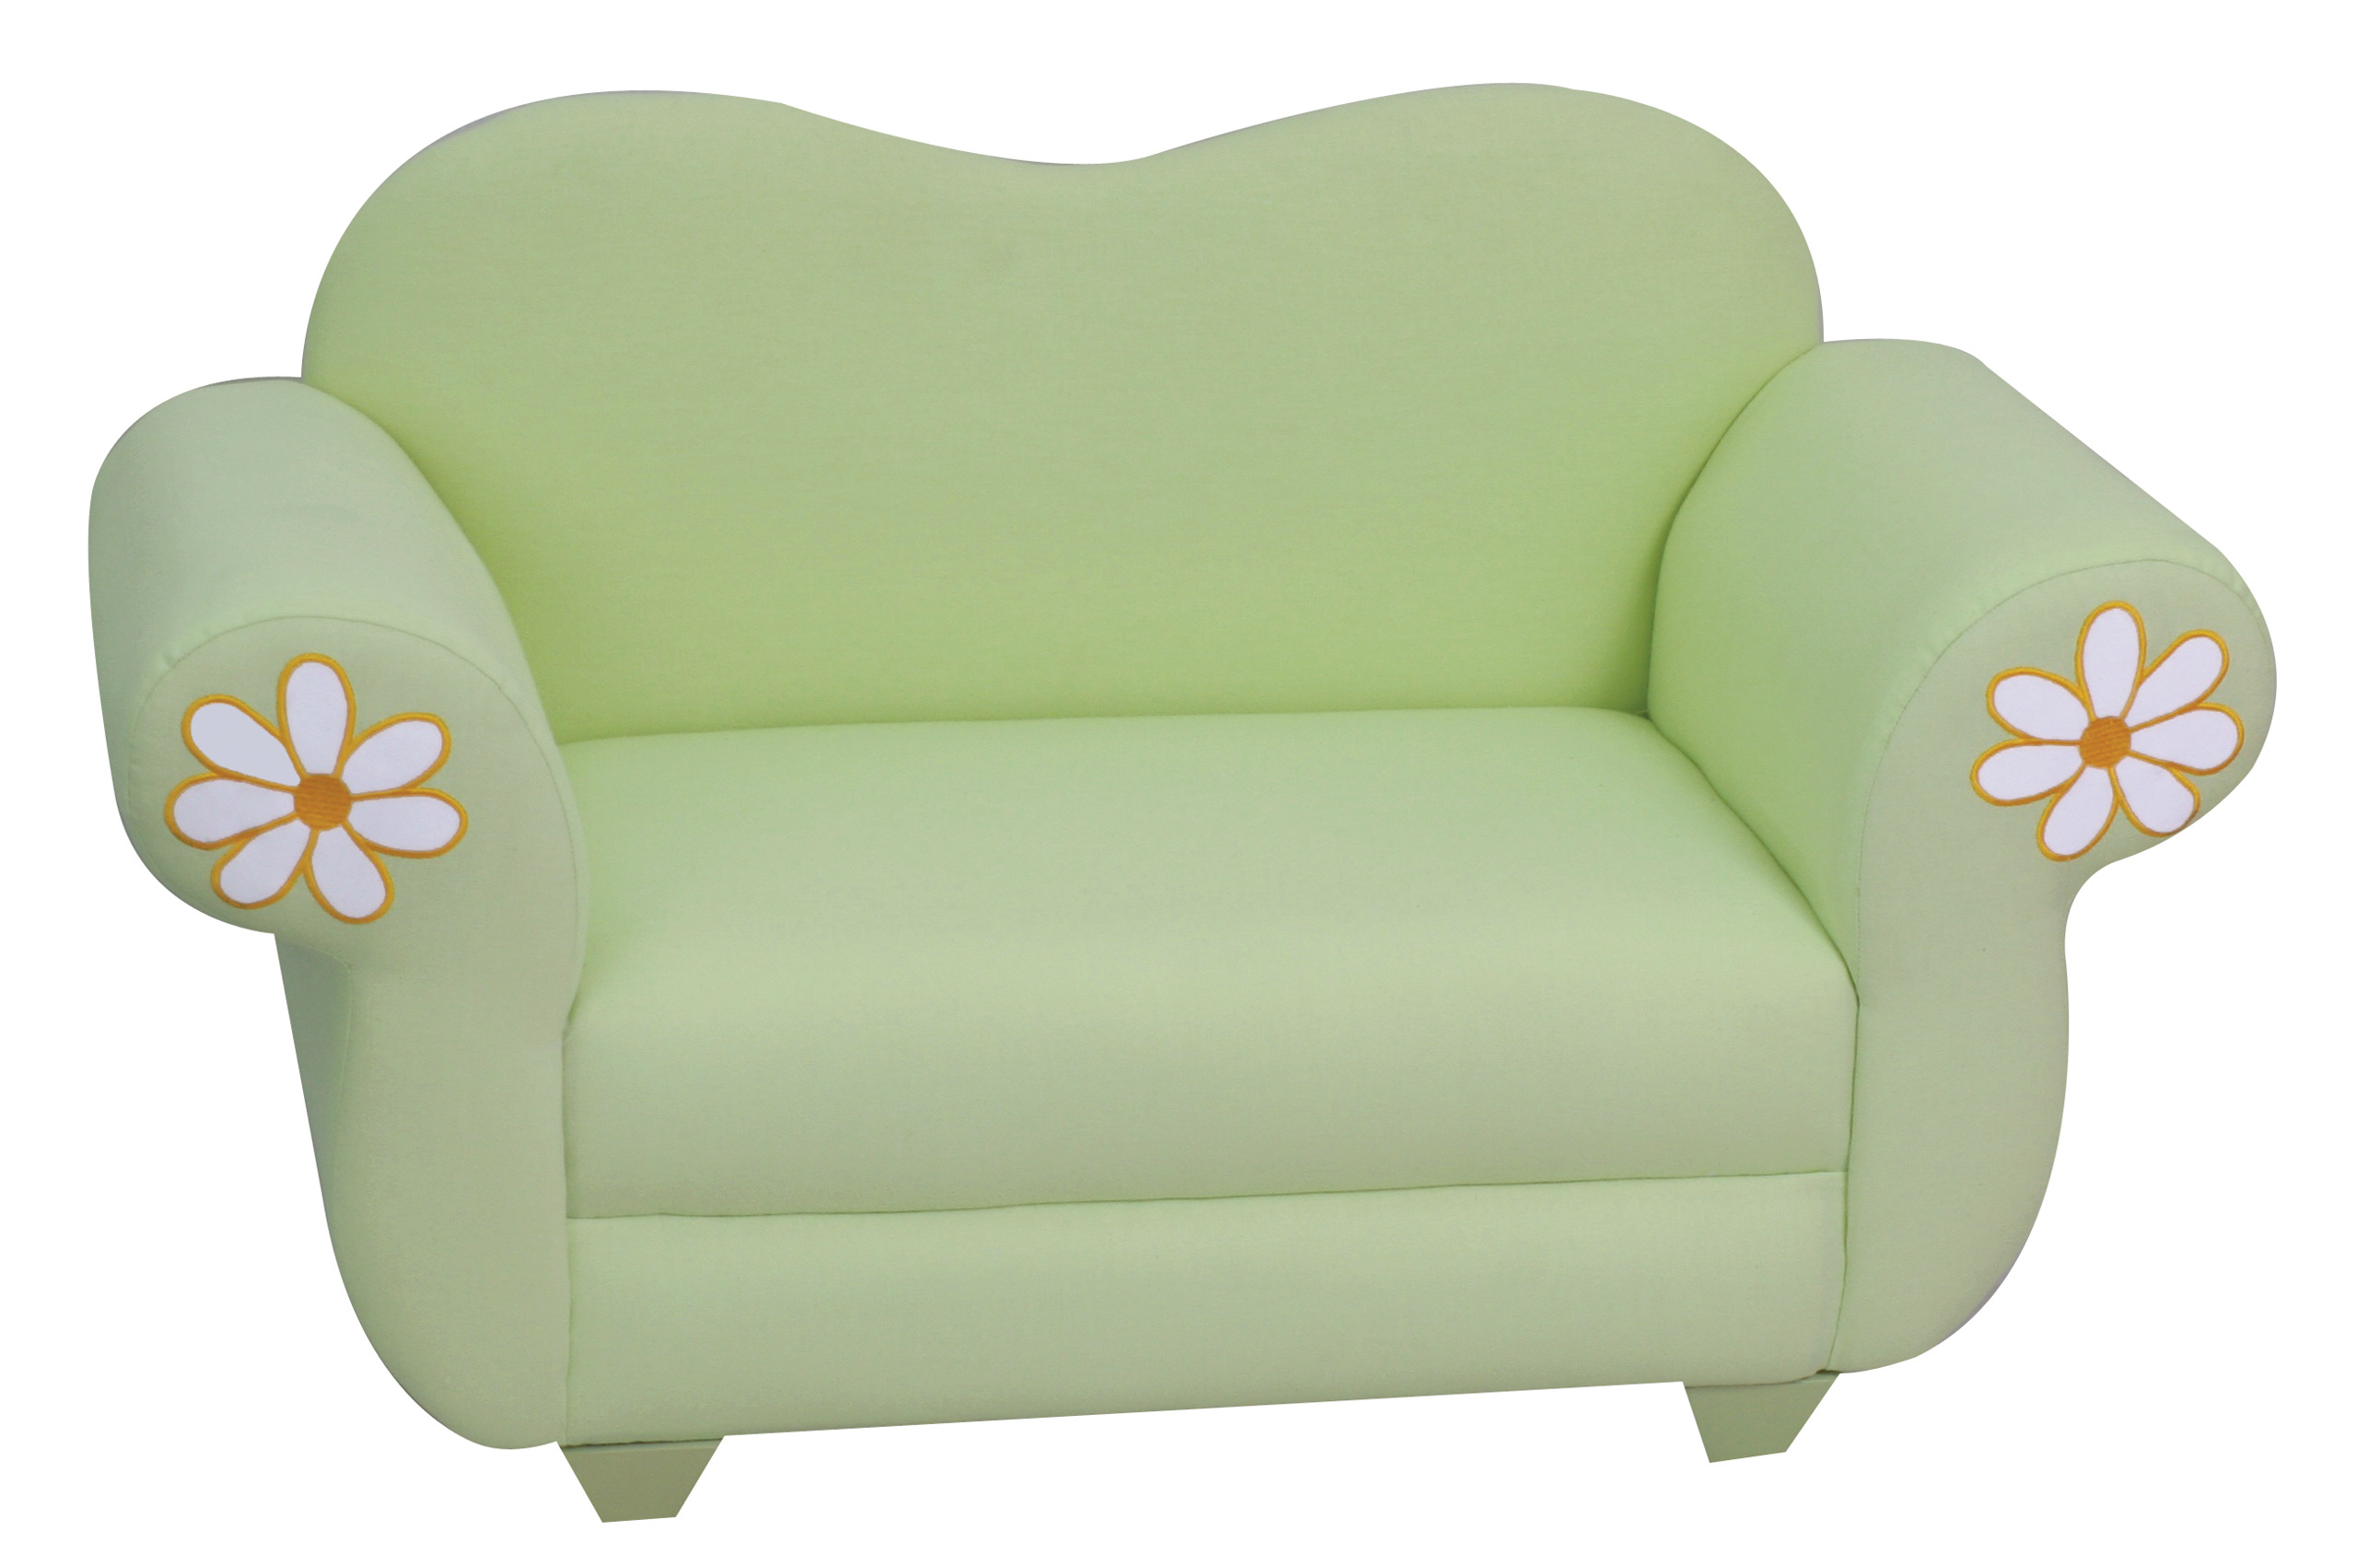 Lamps Sofa And Chair Clipart.